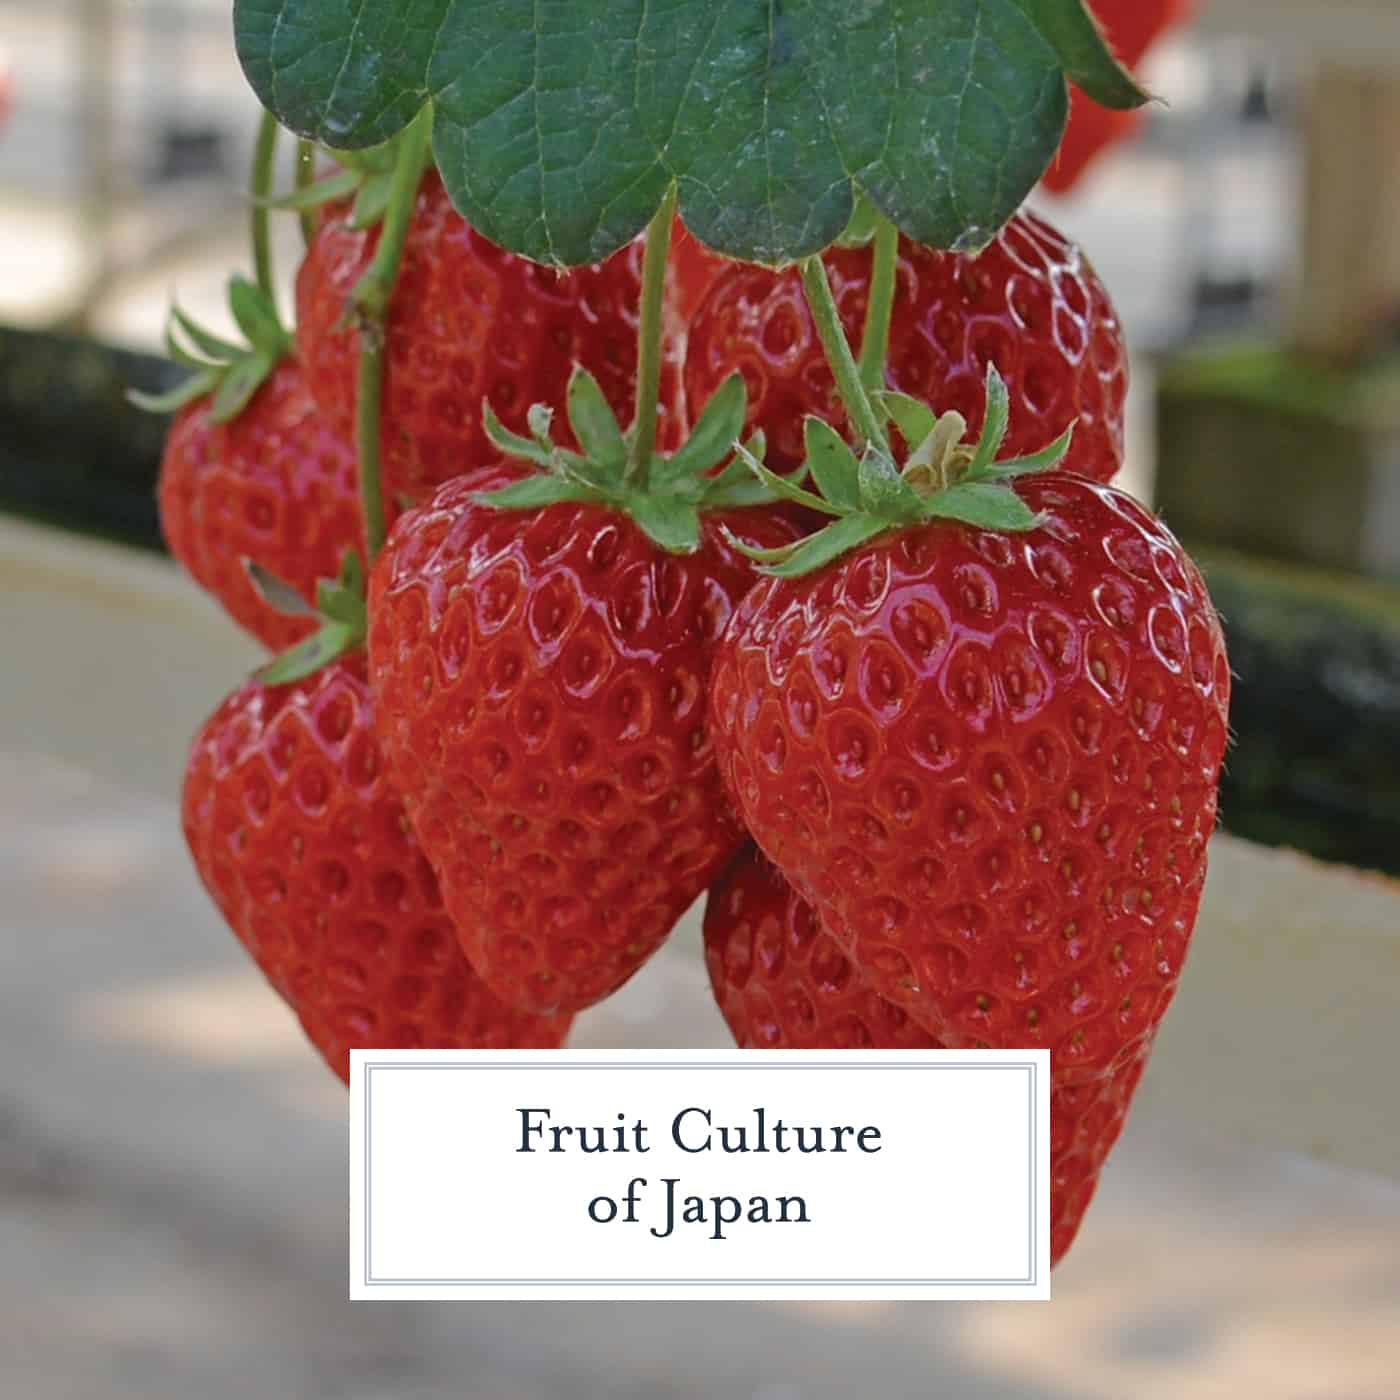 Strawberries aren't usually associated with Japan, but they grow some of the best strawberries in the world. Plan a strawberry picking adventure during your vacation! #japan www.savoryexperiments.com